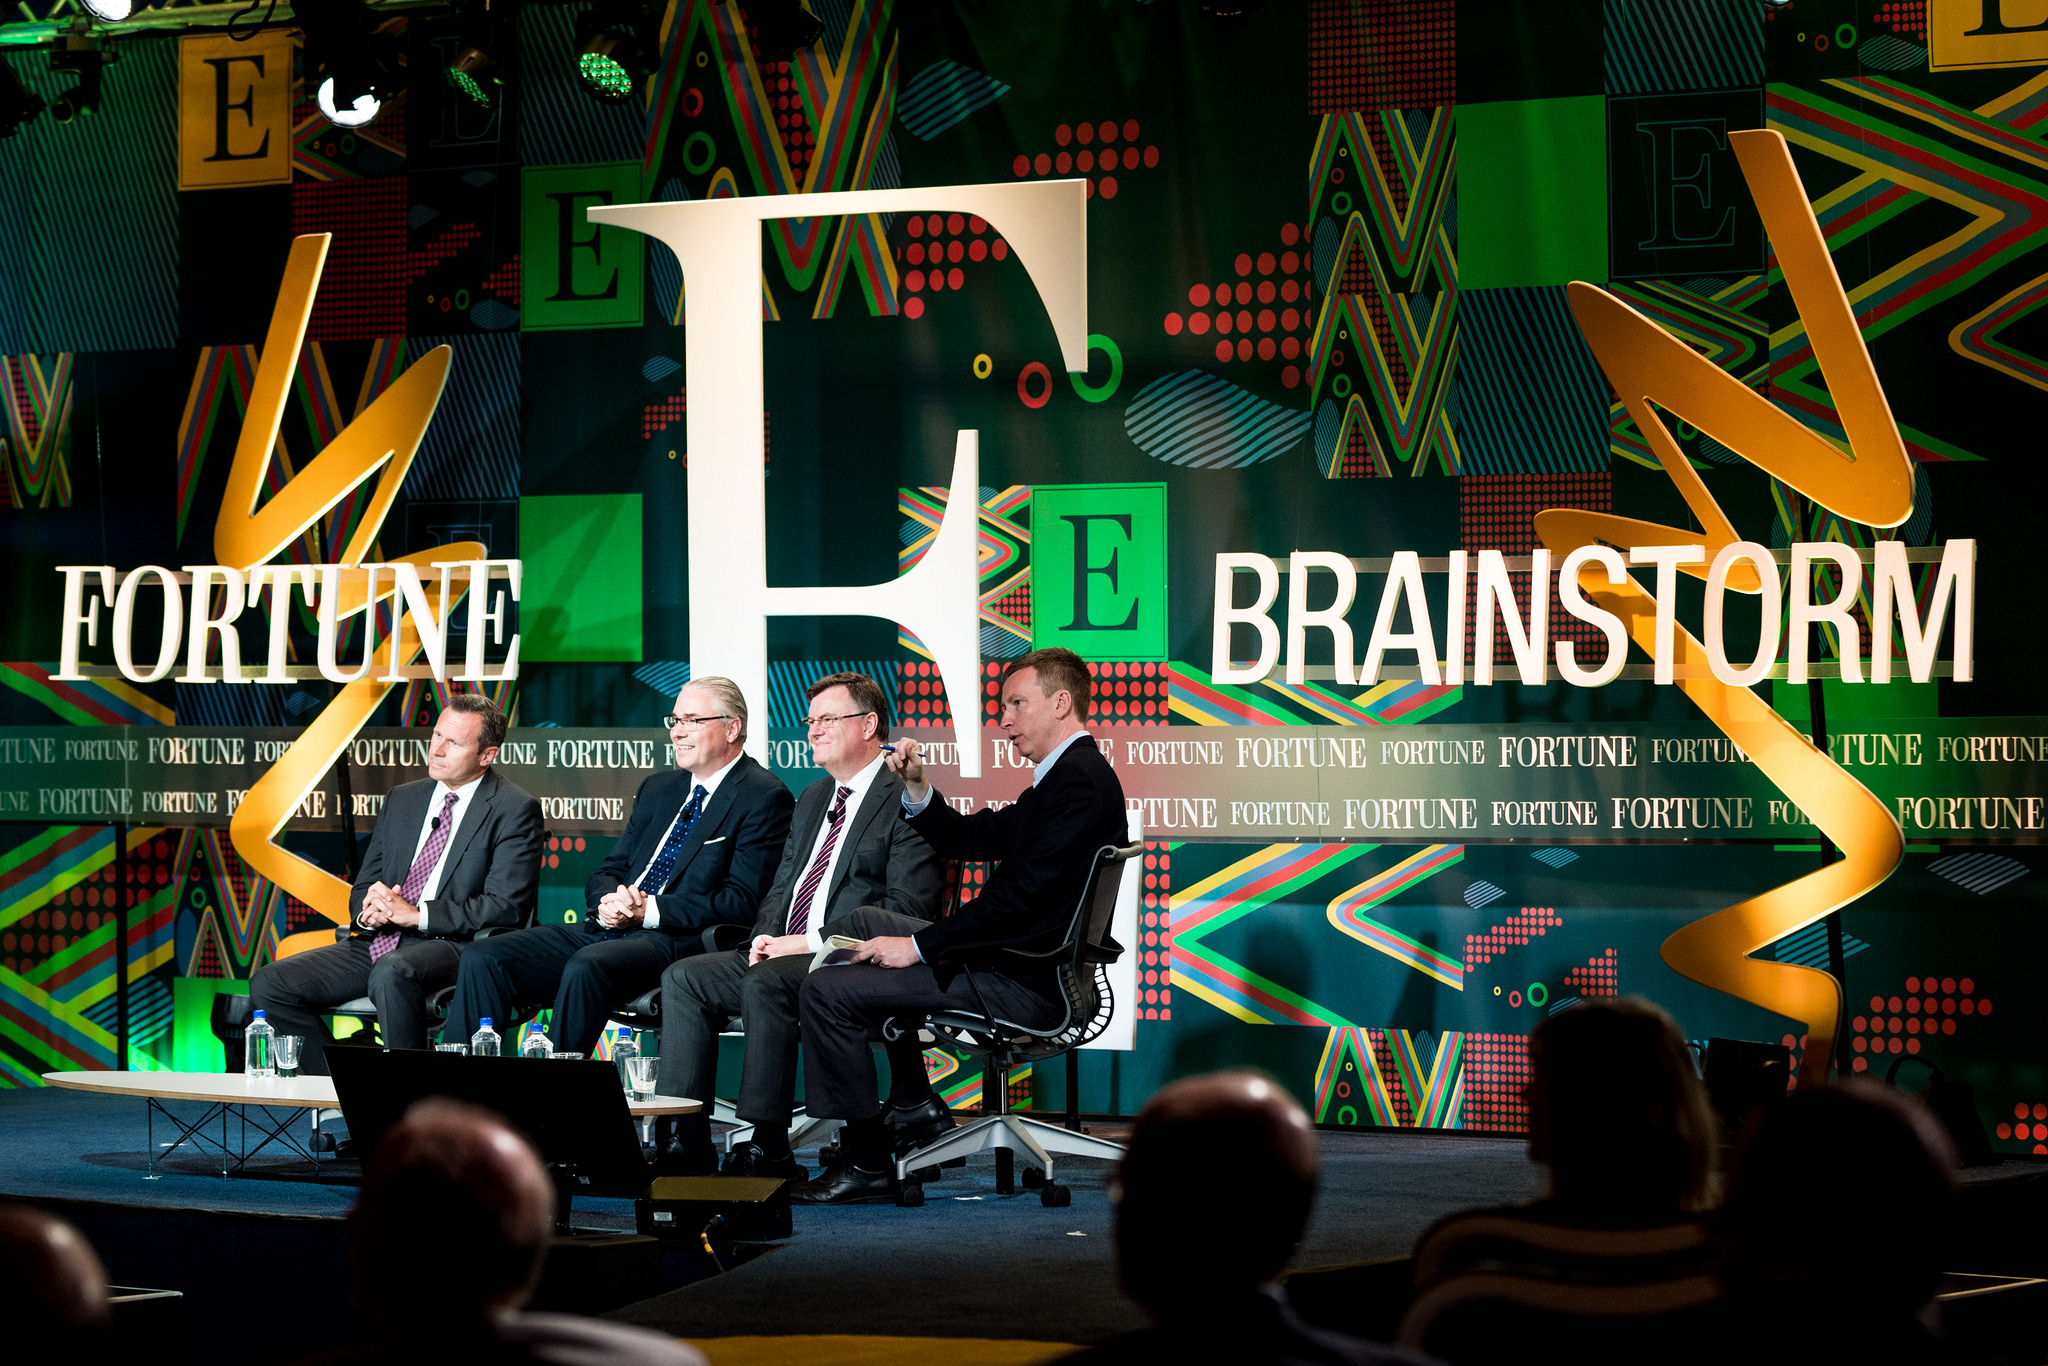 Royal Dutch Shell's Jeremy Bentham, McKinsey & Company's Matt Rogers, Encana CEO Doug Suttles, and Fortune's Brian O'Keefe at the 2015 Fortune Brainstorm E conference in Austin, Texas.